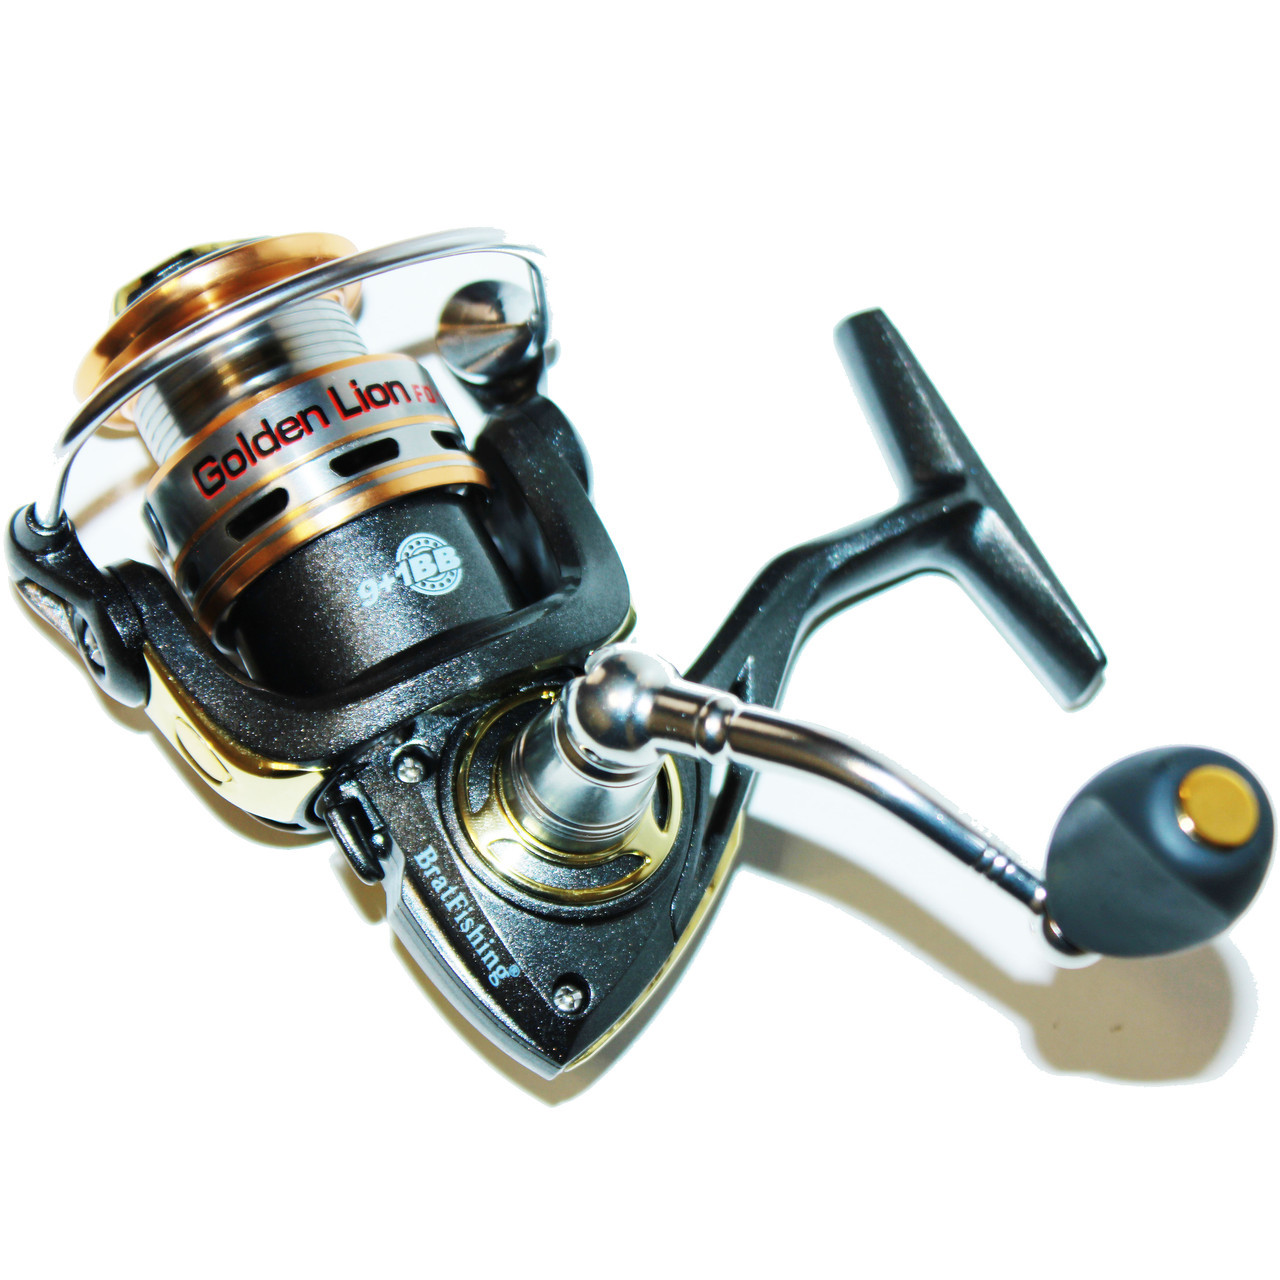 Катушка BratFishing Golden Lion FD 2000 9+1